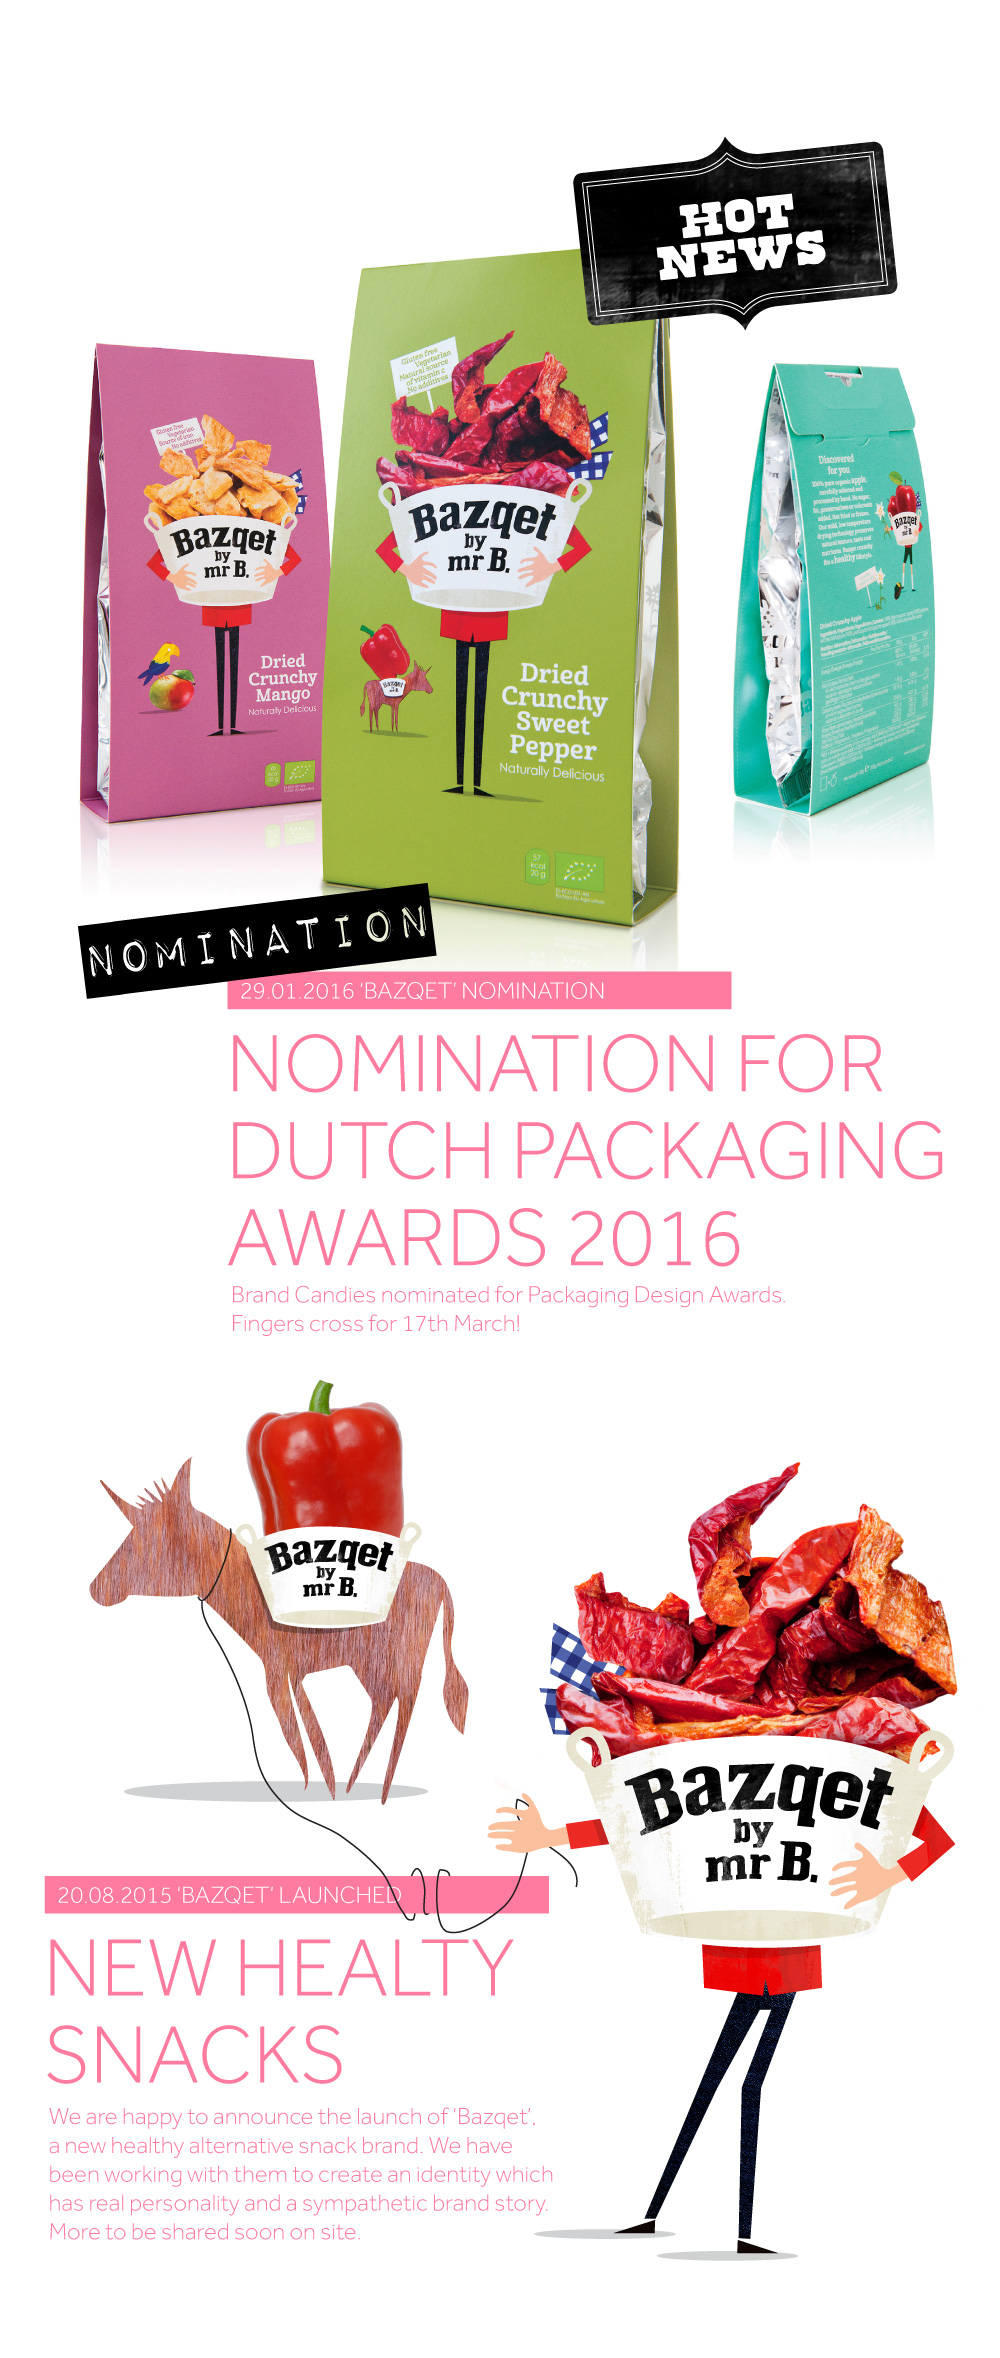 Brand Candies Launch New Snack Brand 'Bazqet'. NOMINATION FOR DUTCH PACKAGING AWARDS 2016